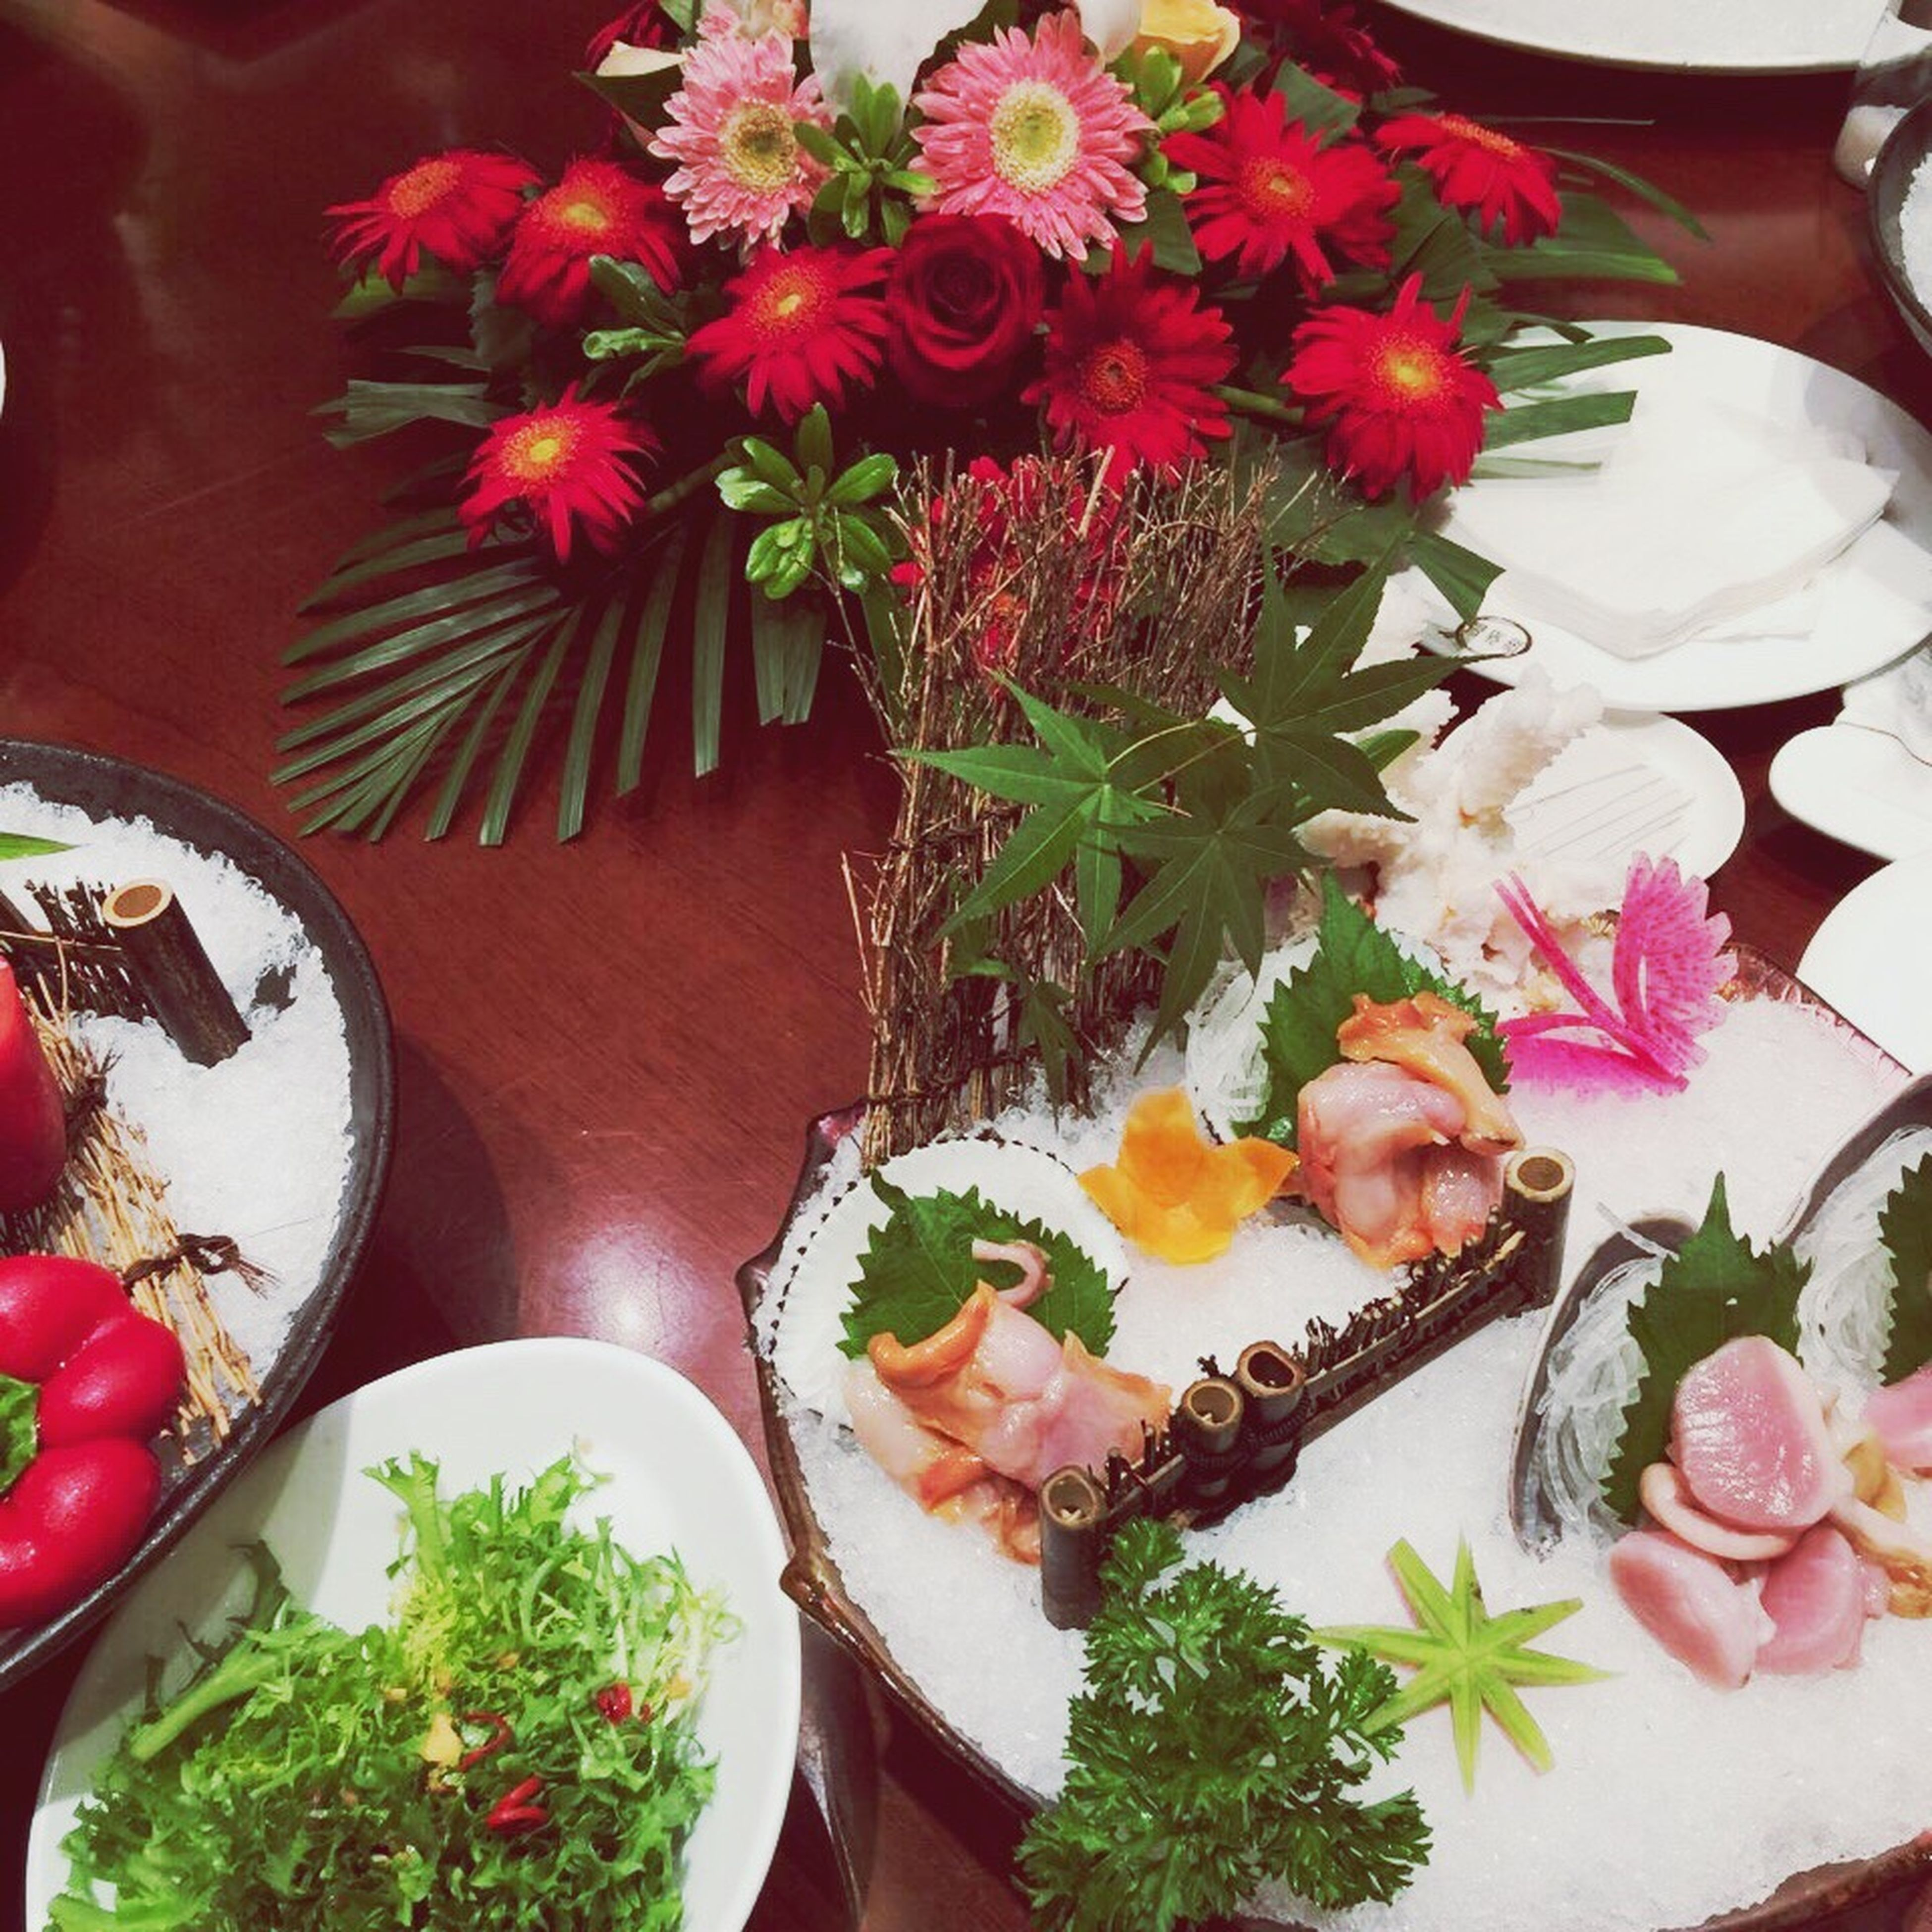 indoors, flower, freshness, bouquet, high angle view, variation, bunch of flowers, multi colored, petal, fragility, beauty in nature, ready-to-eat, no people, large group of objects, arrangement